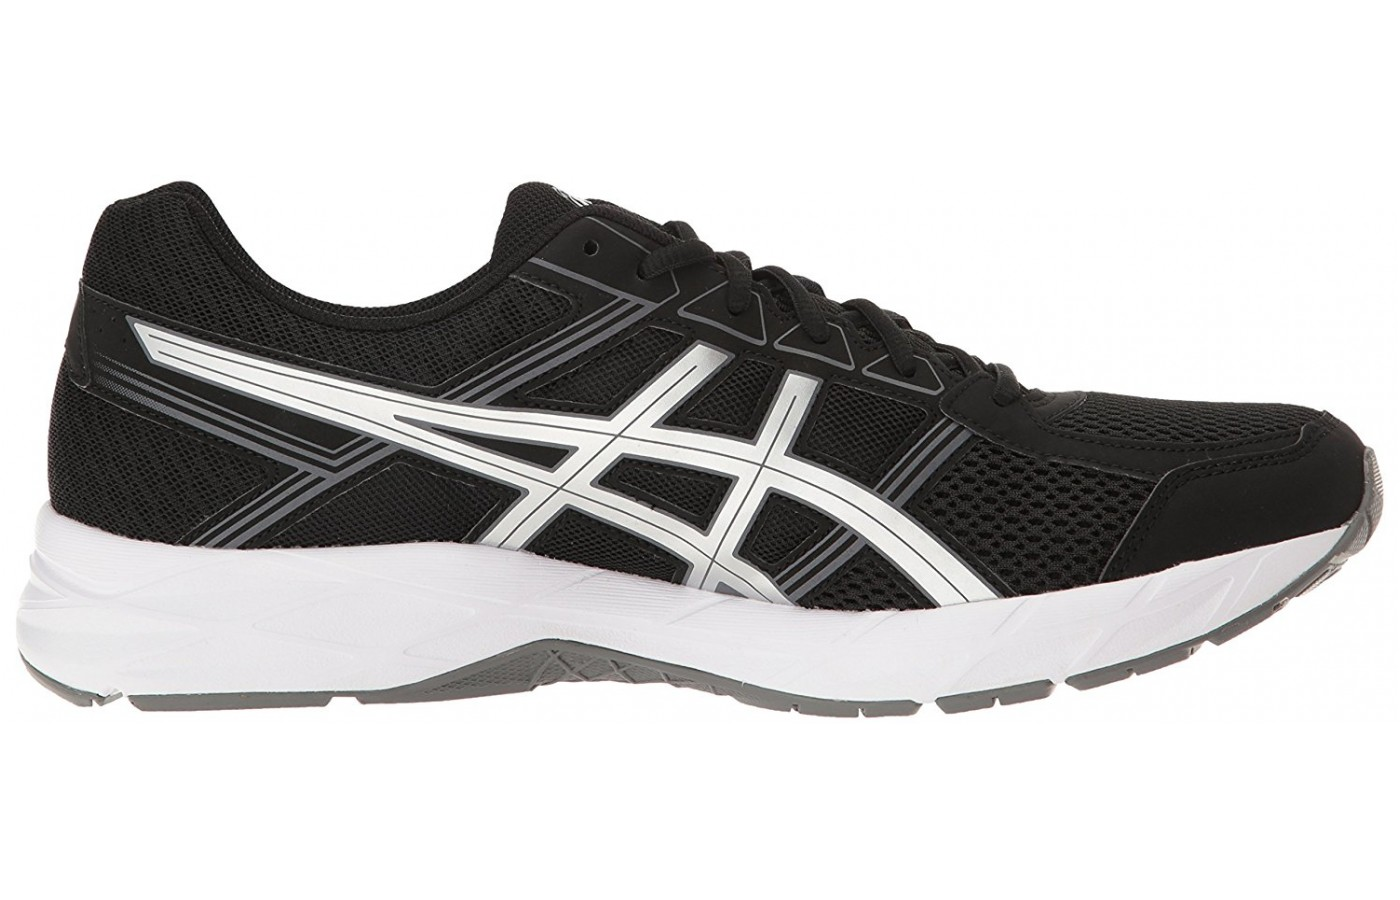 Asics Gel Contend 4 side